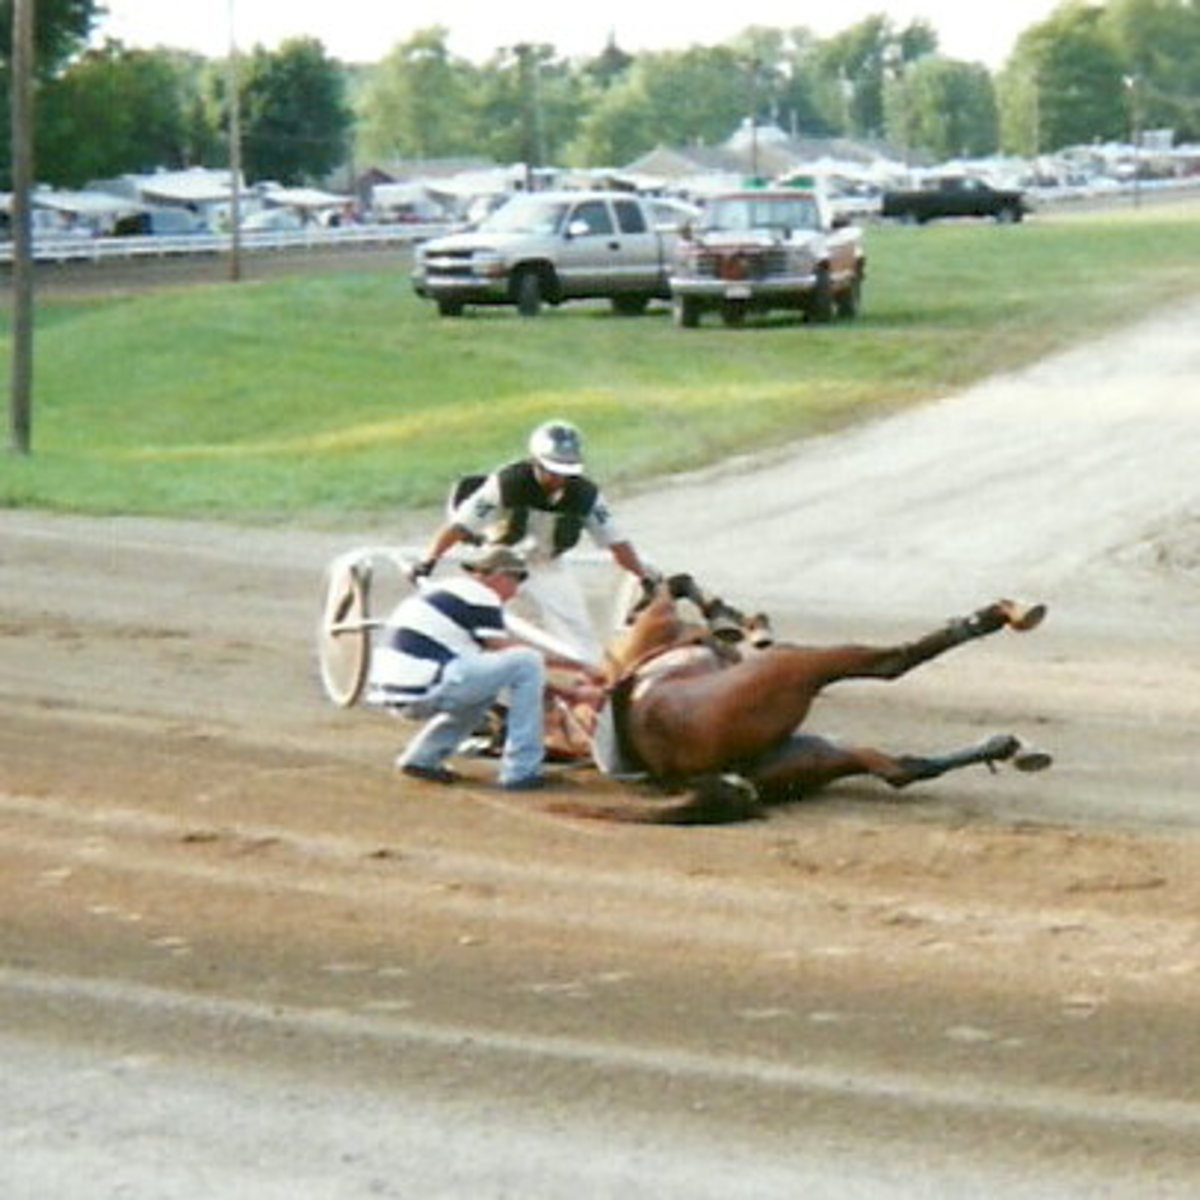 Wonder Buns was the poor Little Filly Who Couldn't on August 17, 2011 at the Henry County Fair in Napoleon, Ohio.